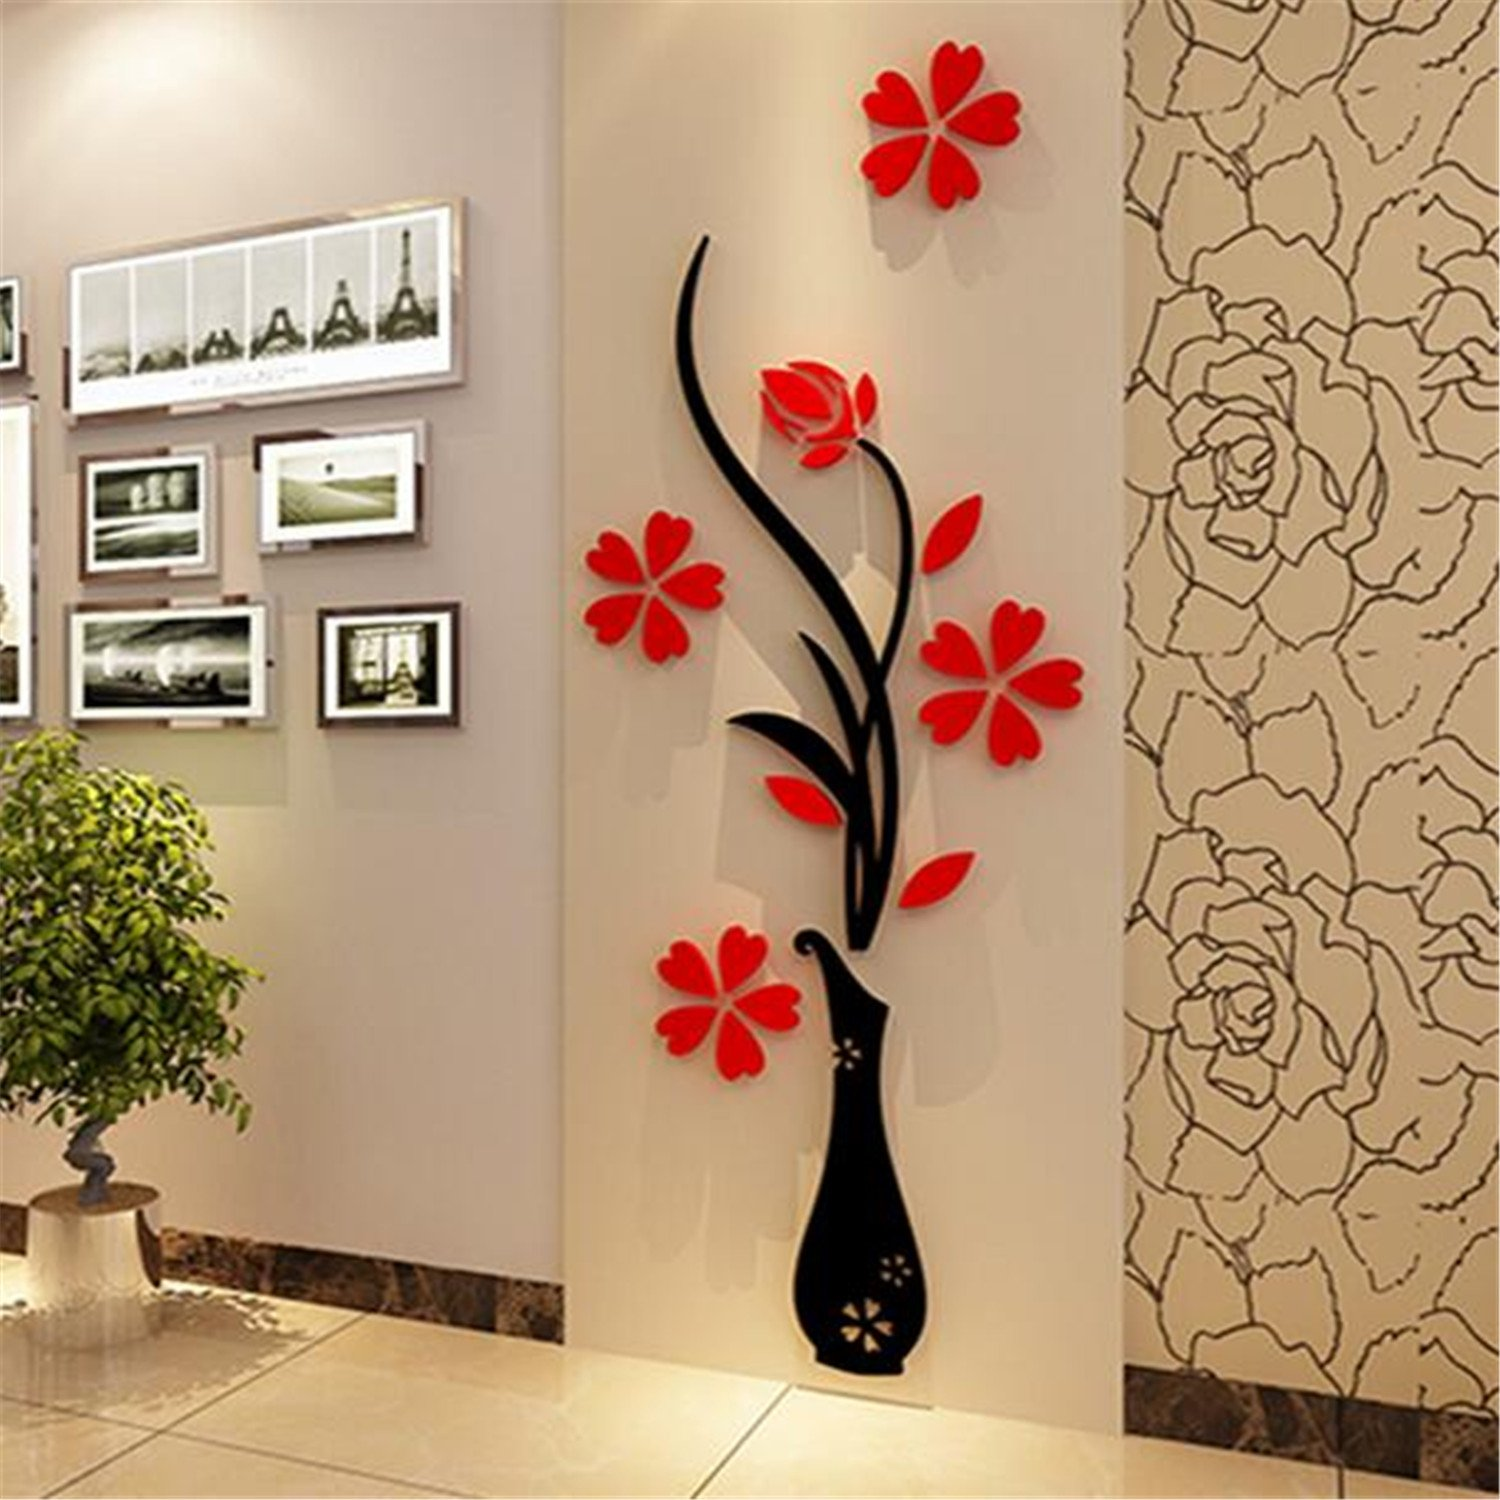 Charmant Amazon.com: Home Accessories 3d Wall Decoration Wall Hangings Creative  Ceramic Flower Wall Murals Removable Wall Decals: Home U0026 Kitchen